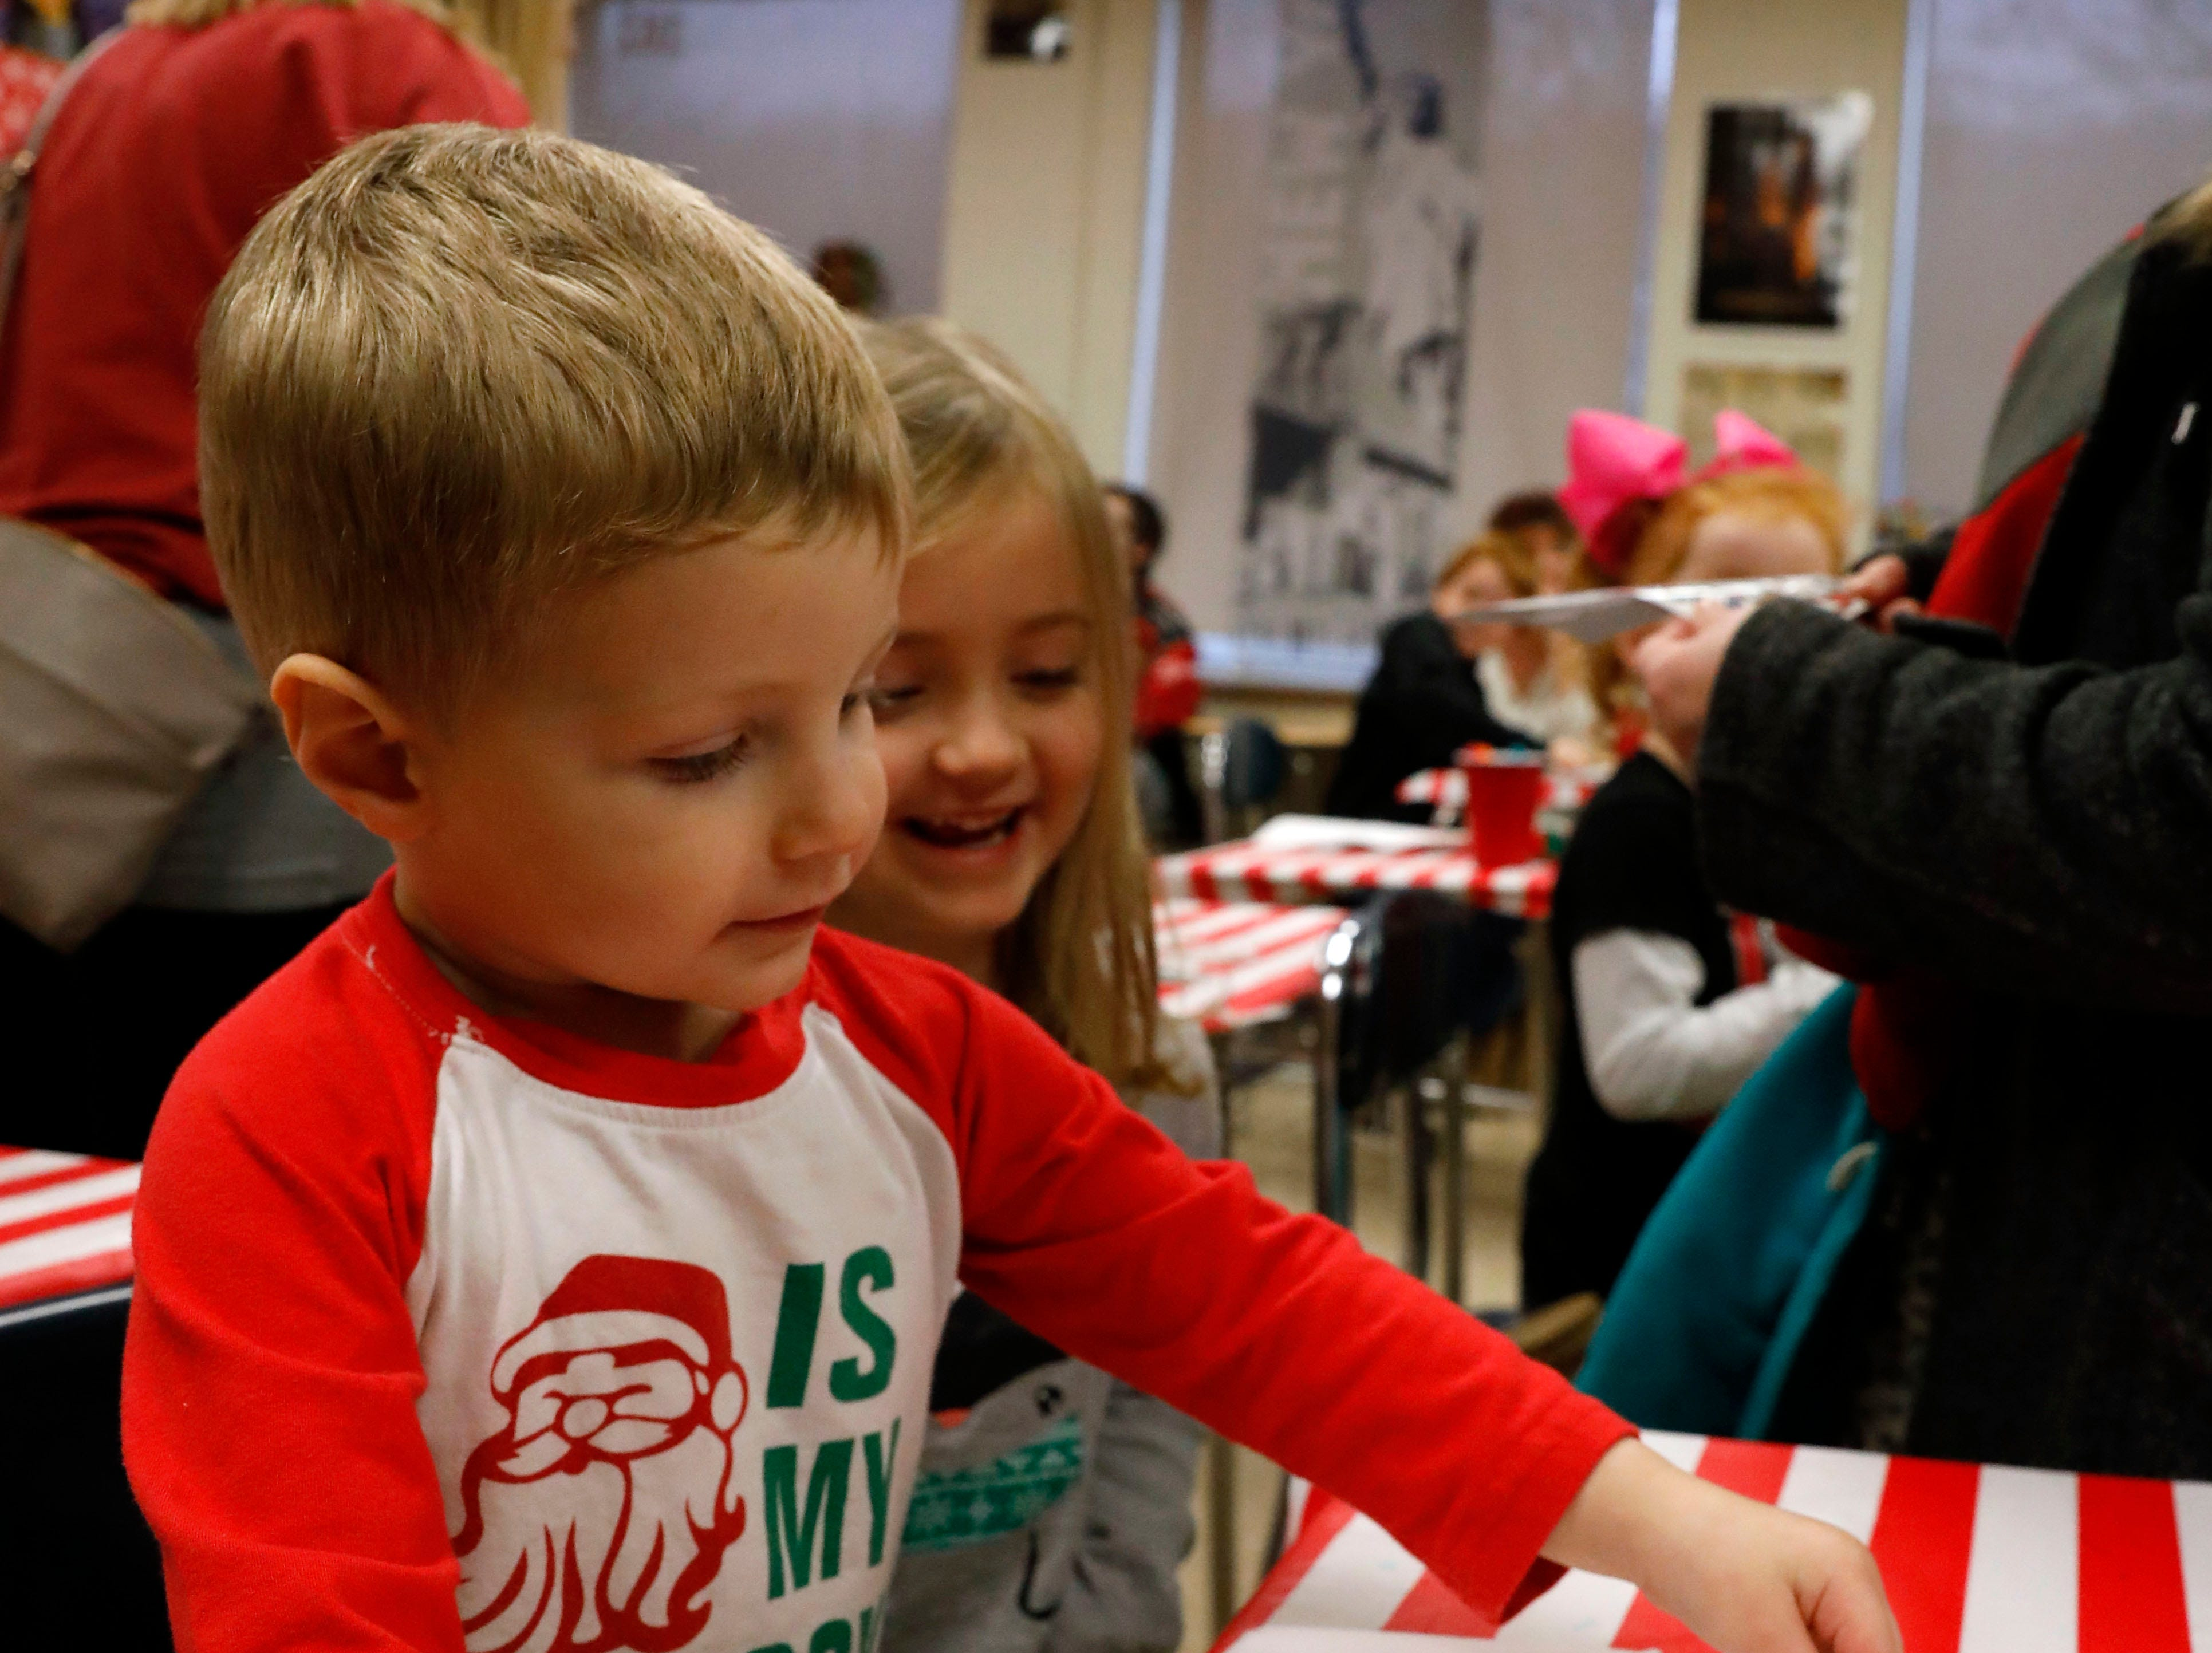 The Gift of Time was held Saturday, Dec. 1, 2018, at Lancaster High School in Lancaster. The annual free community event featured activities from children younger than 8 and their families. More than 20 community organizations provided stations ranging from cookie decorating, story book reading, gift bag decoration and photographs with Santa Claus.